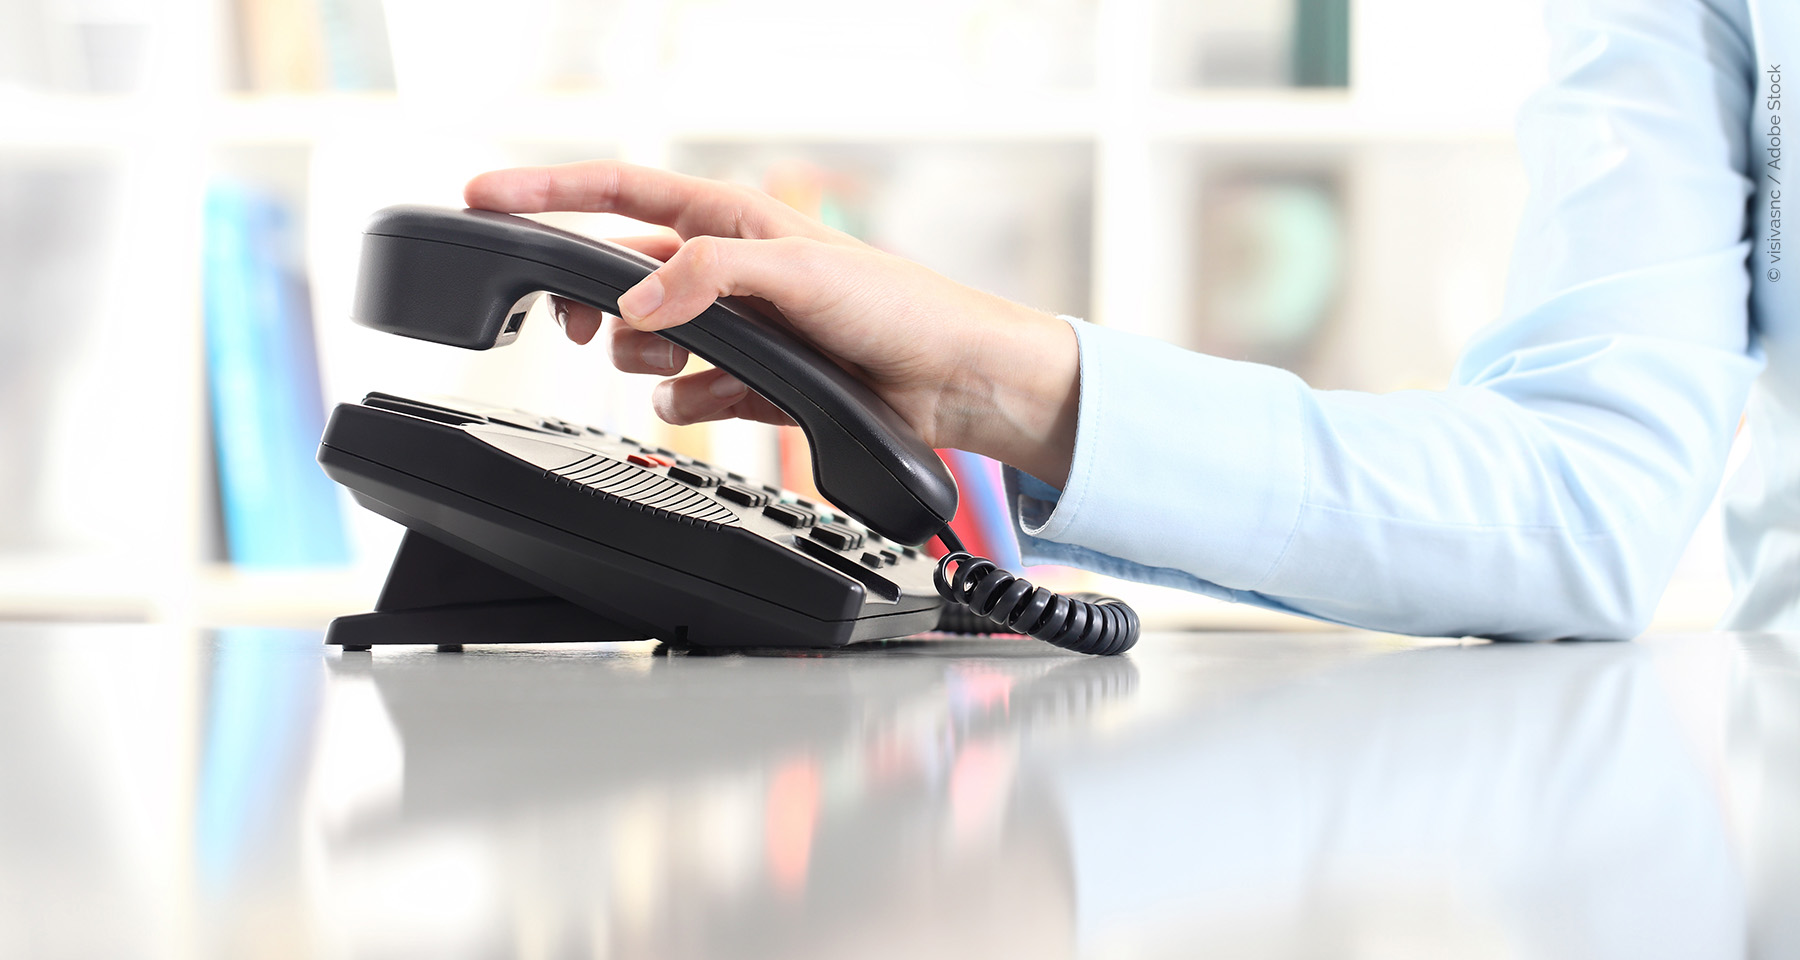 Customer service requires actually picking up the phone